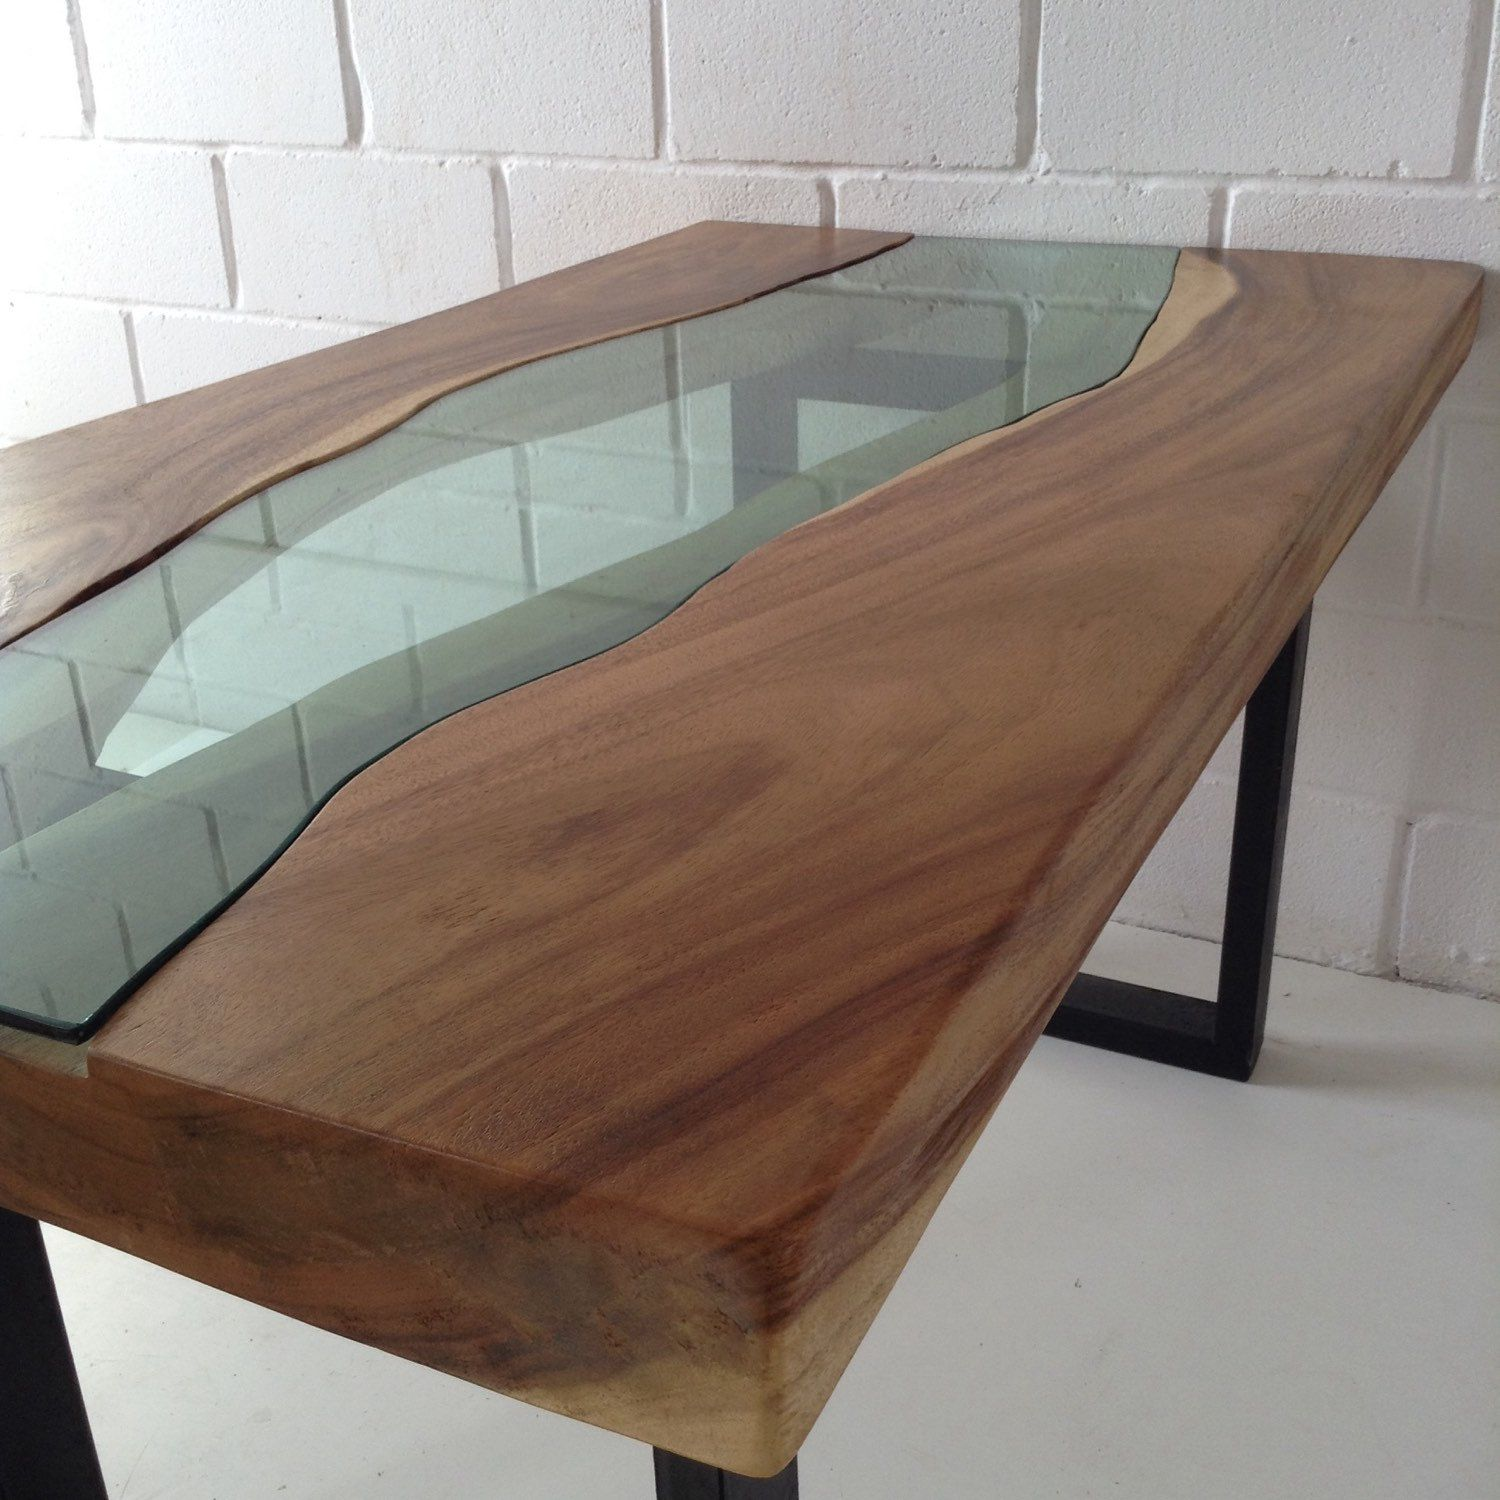 Acacia Dining Table Live Edge Acacia Wood Dining Table With Glass River Centre